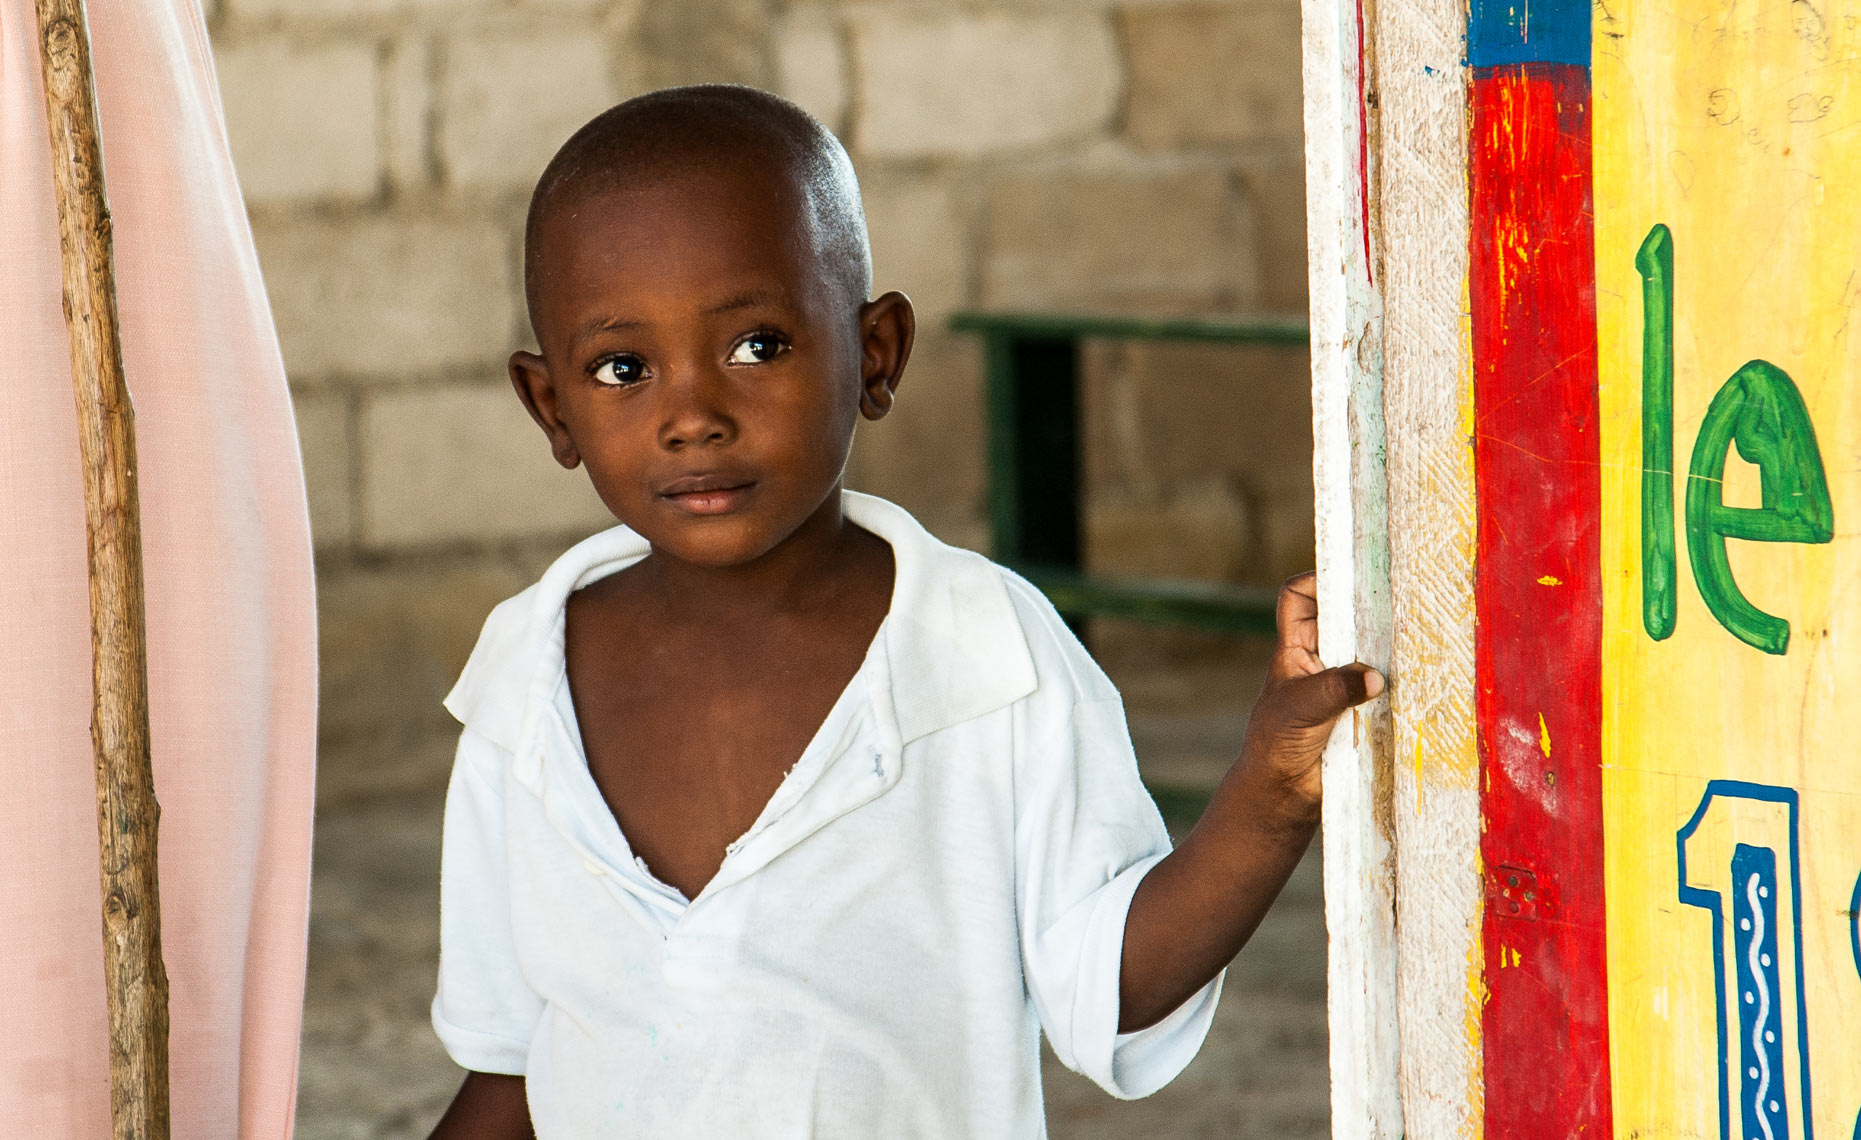 Colton-portrait-of-Haiti-103